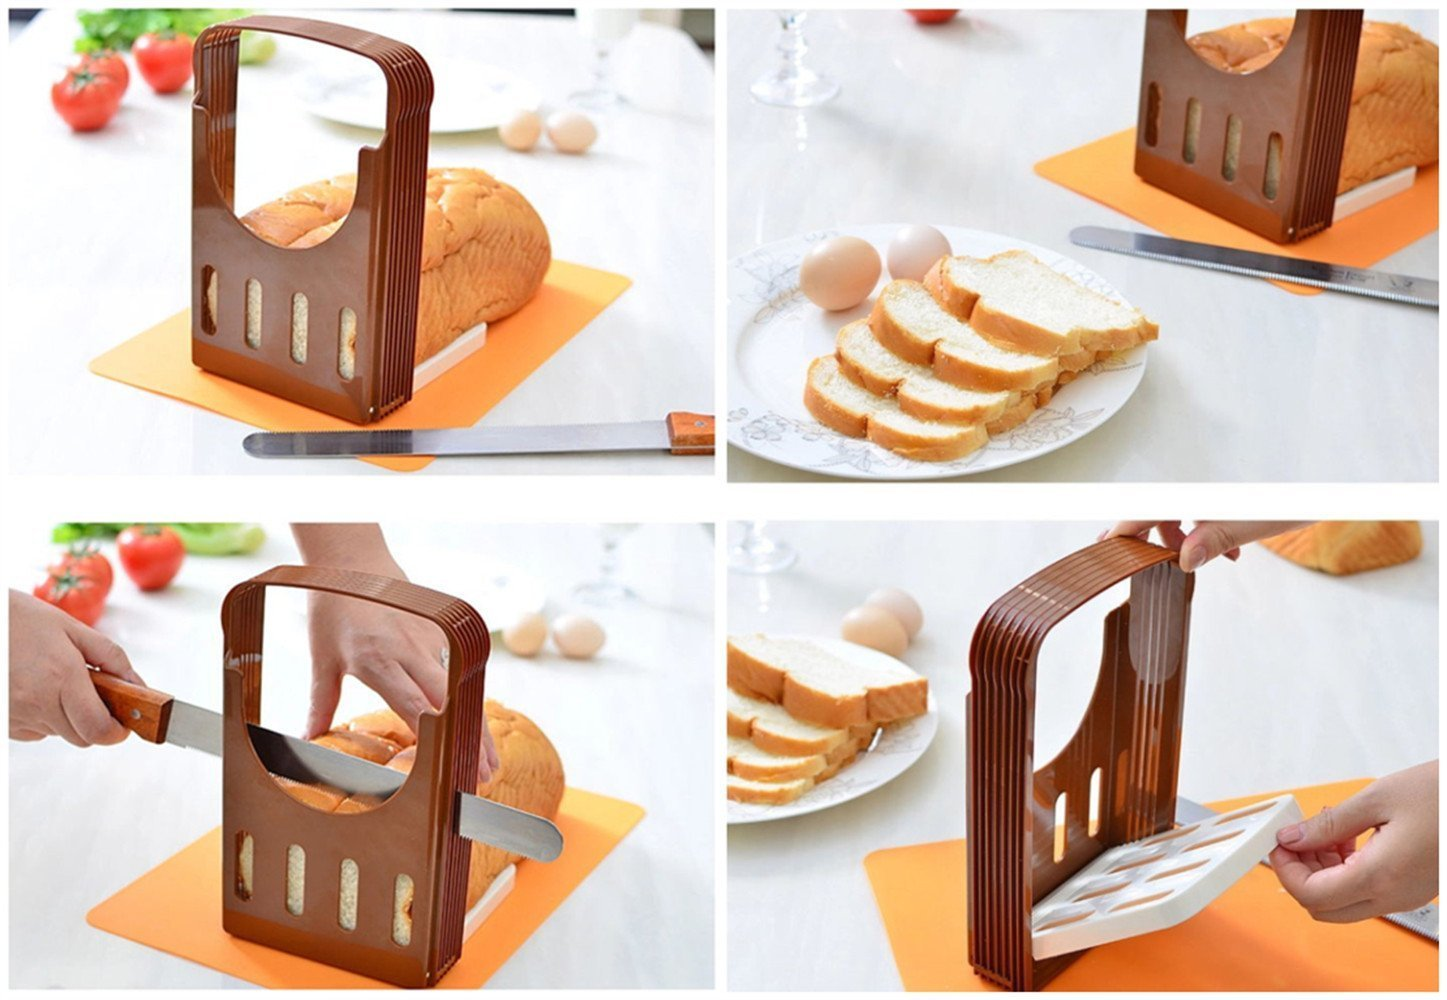 Vangoddy Compact Storage Foldable DIY Home Make Bread Toast Cutter Slicer with 4 Thickness Adjustable (Brown)